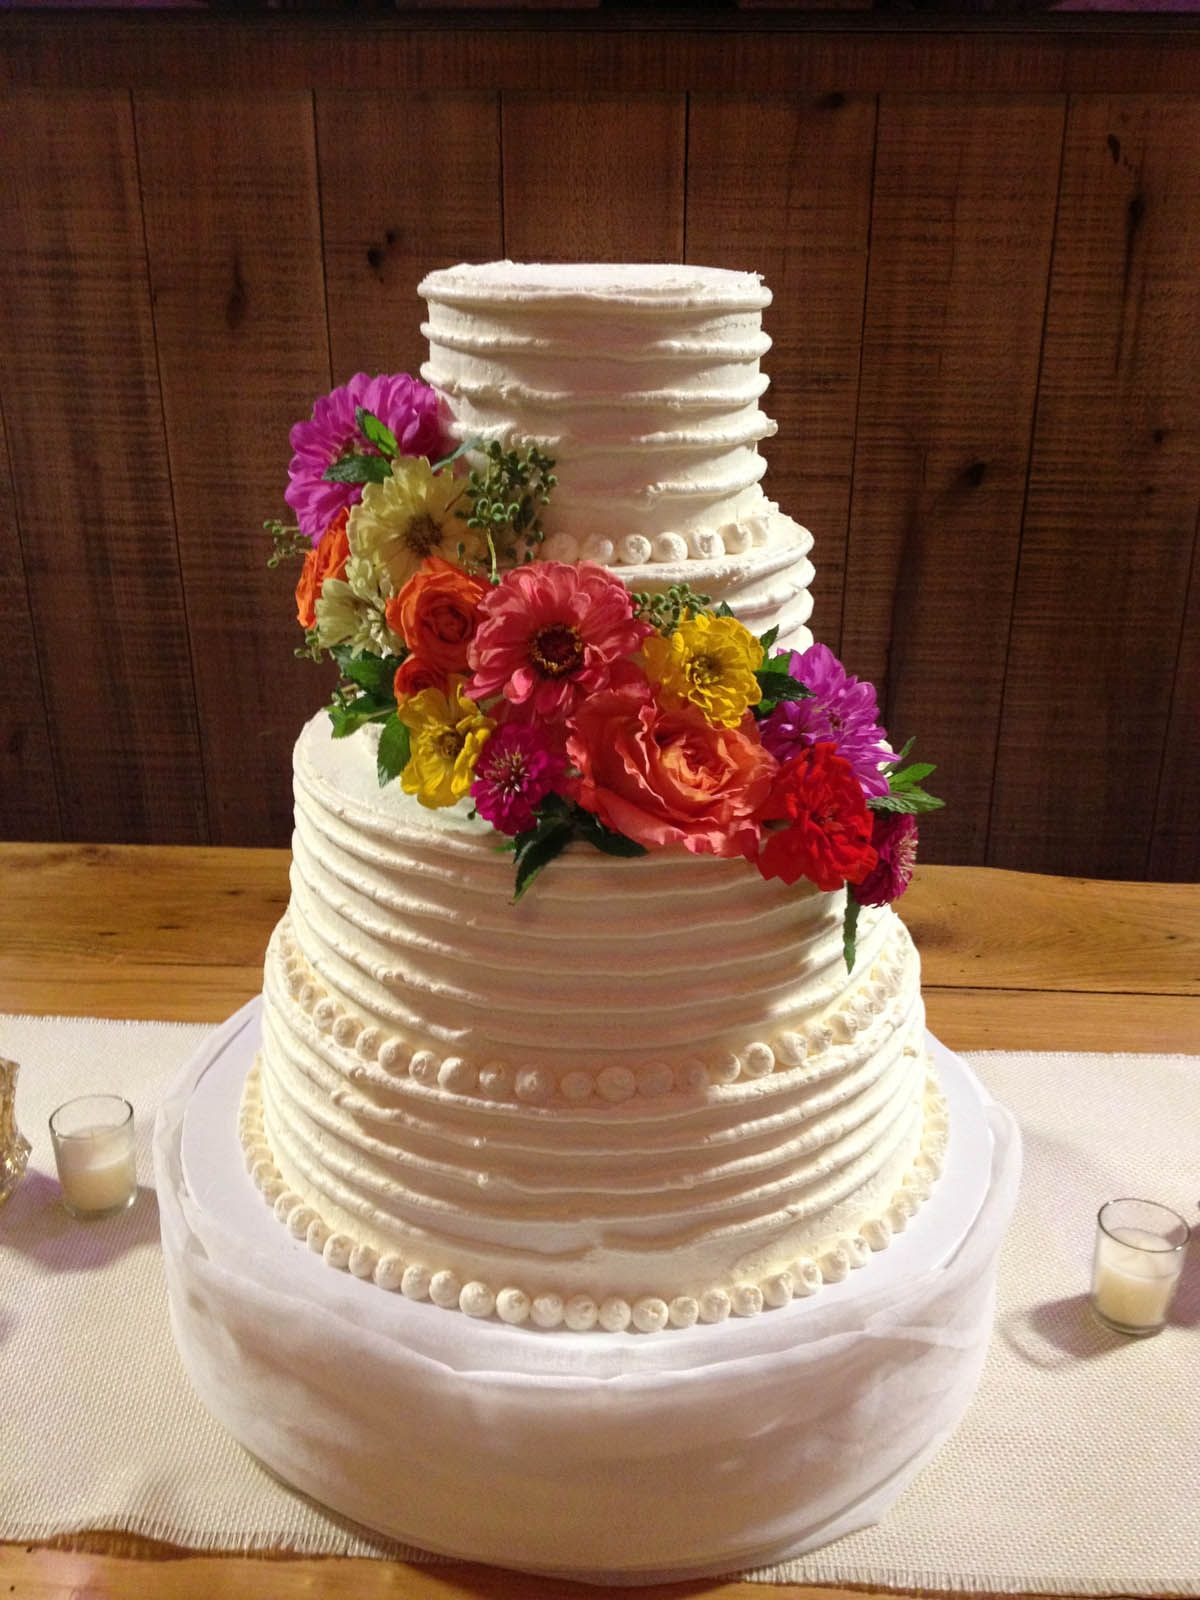 Top 5 Wedding Cake Trends For 2014 One Of The Most Awaited Part Of